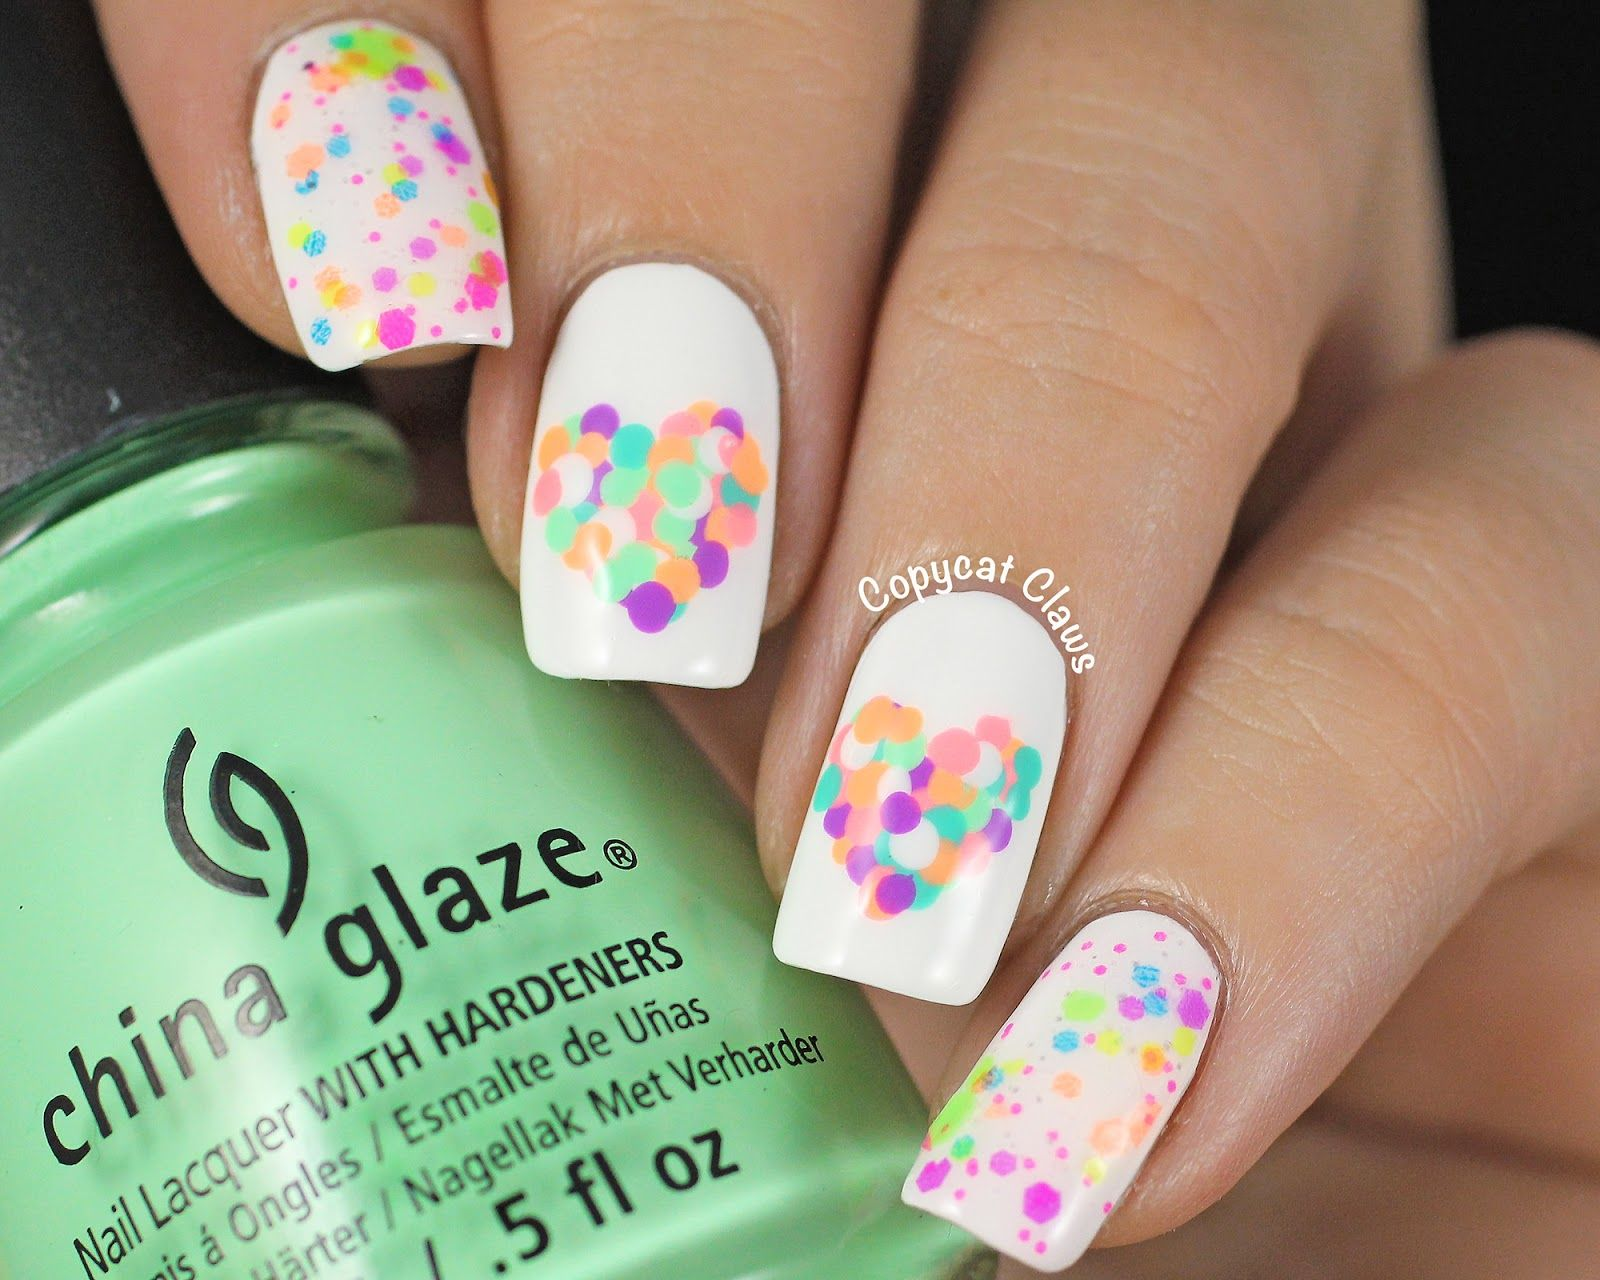 Copycat Claws: Mani Swap with Colors Frenzy | Nails! | Pinterest ...